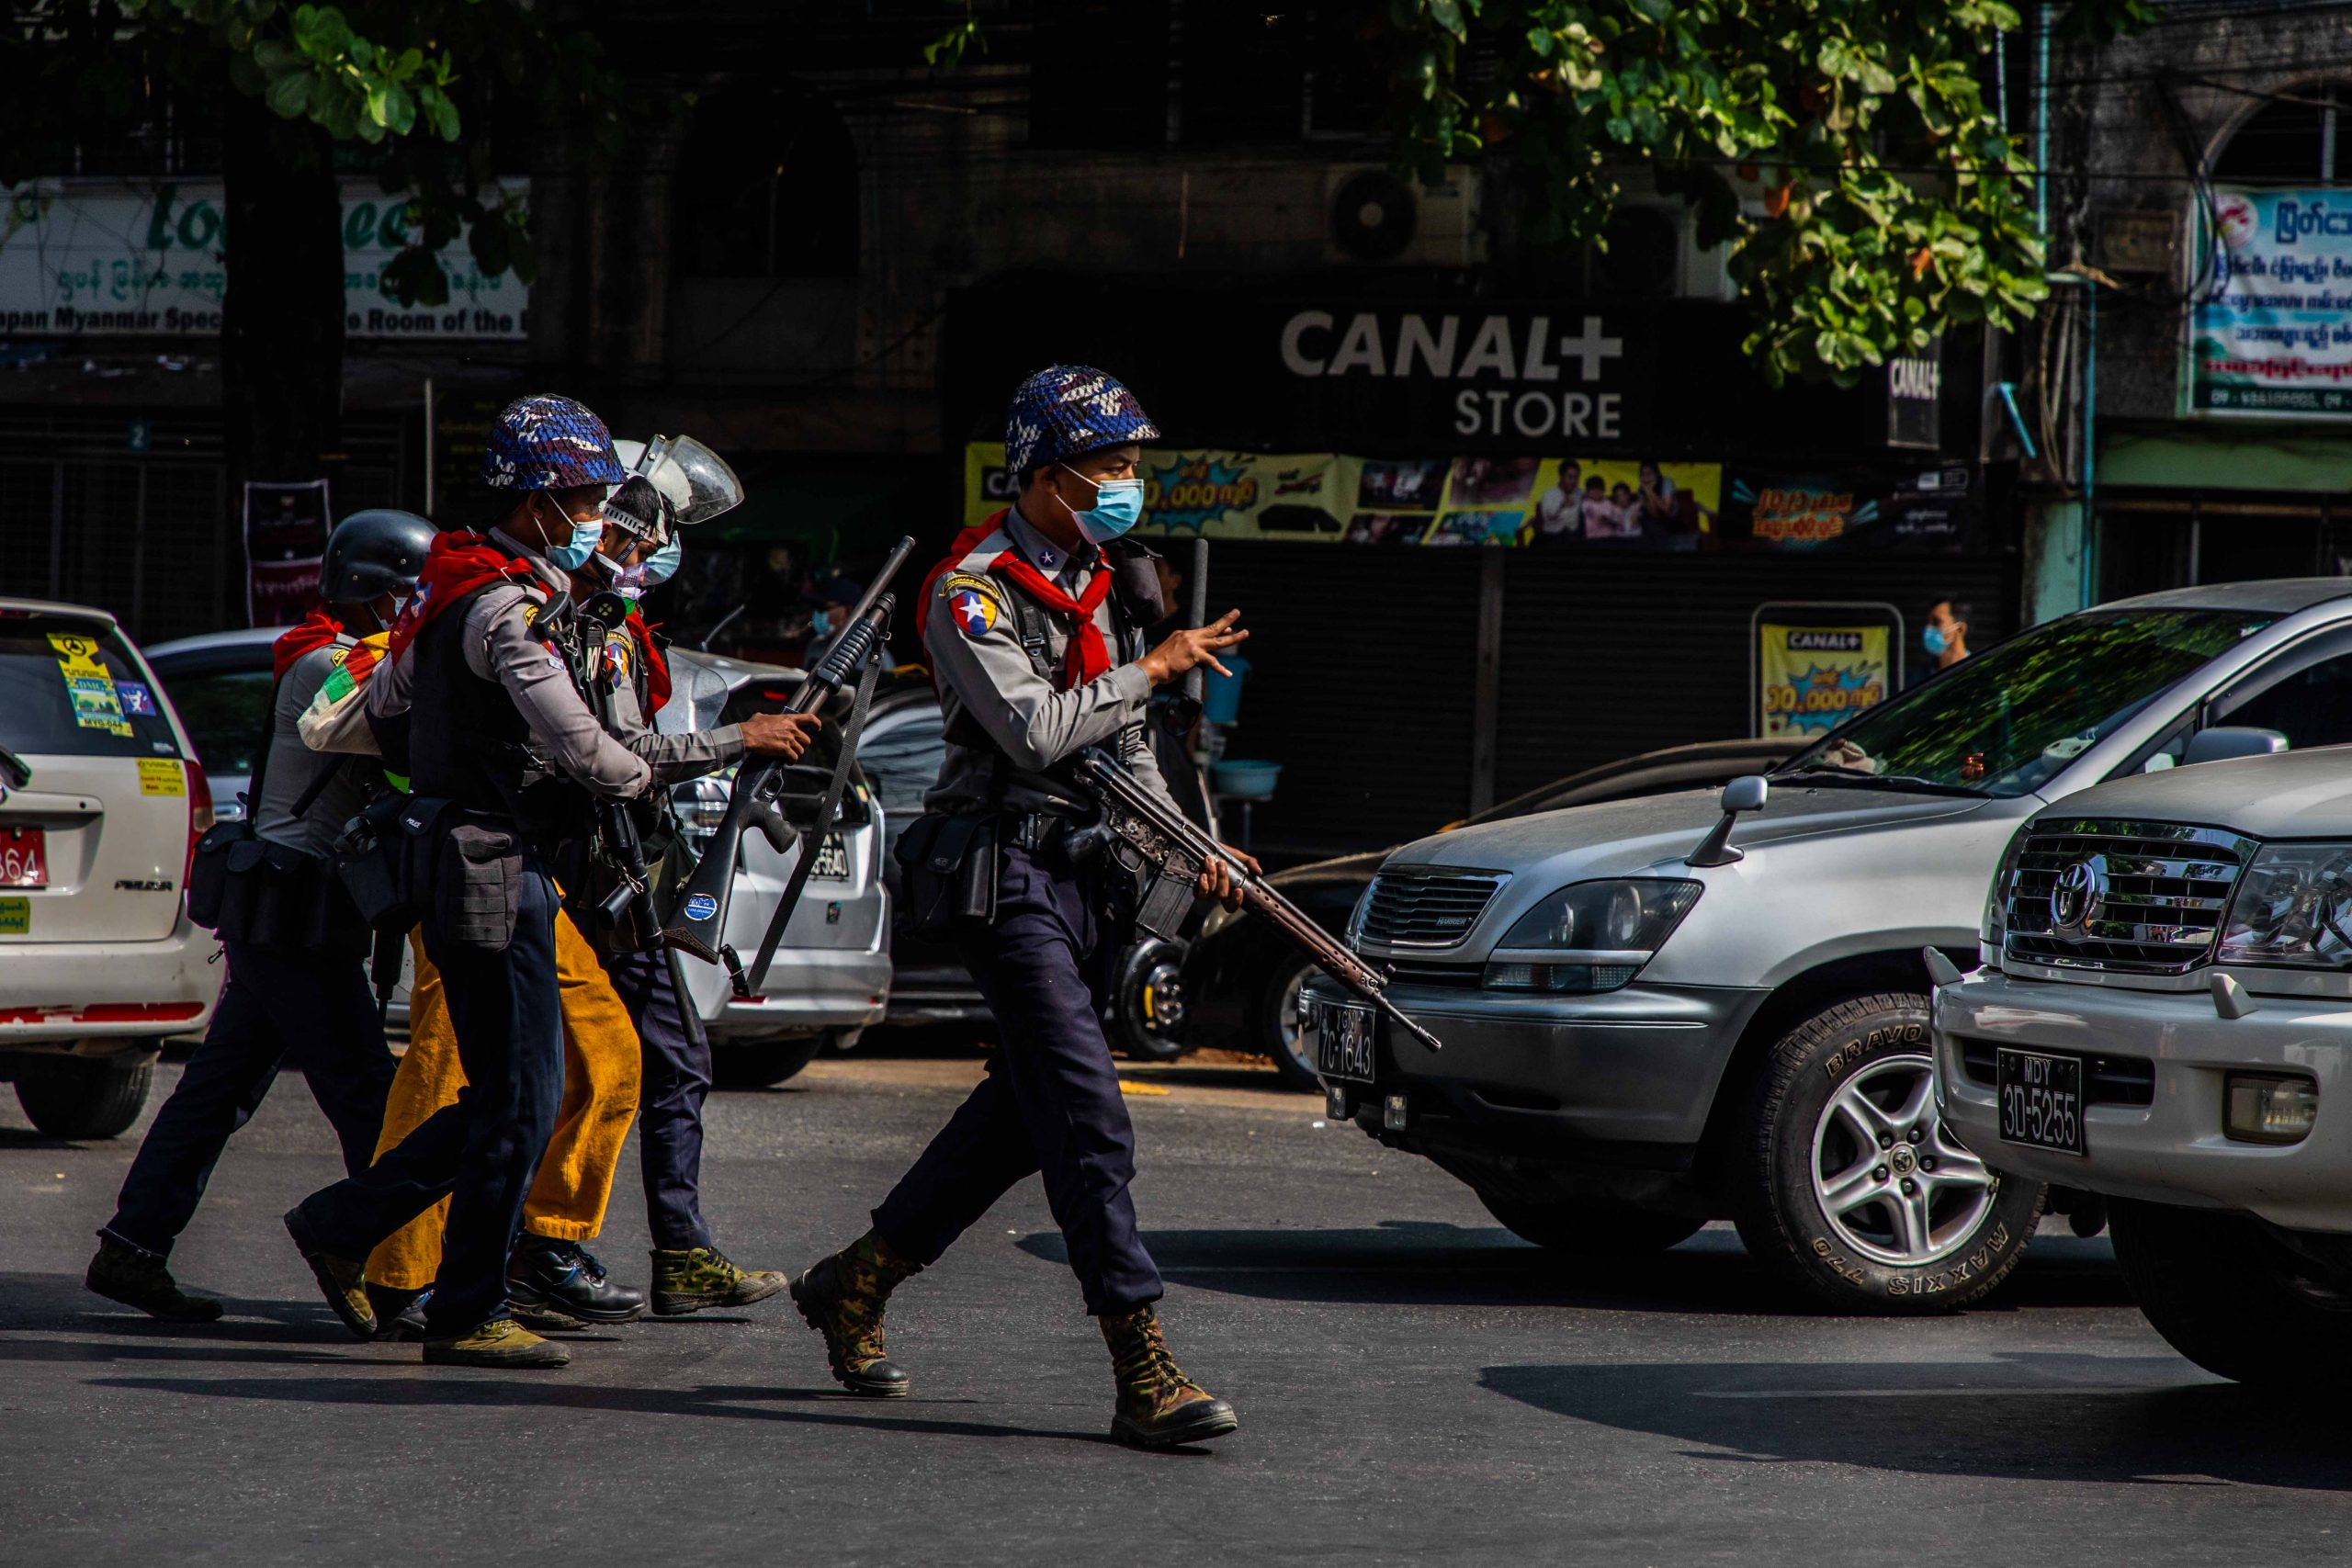 Armed police arrest a protester at an anti-coup demonstration in Yangon's Sanchaung Township on February 27. (Frontier)